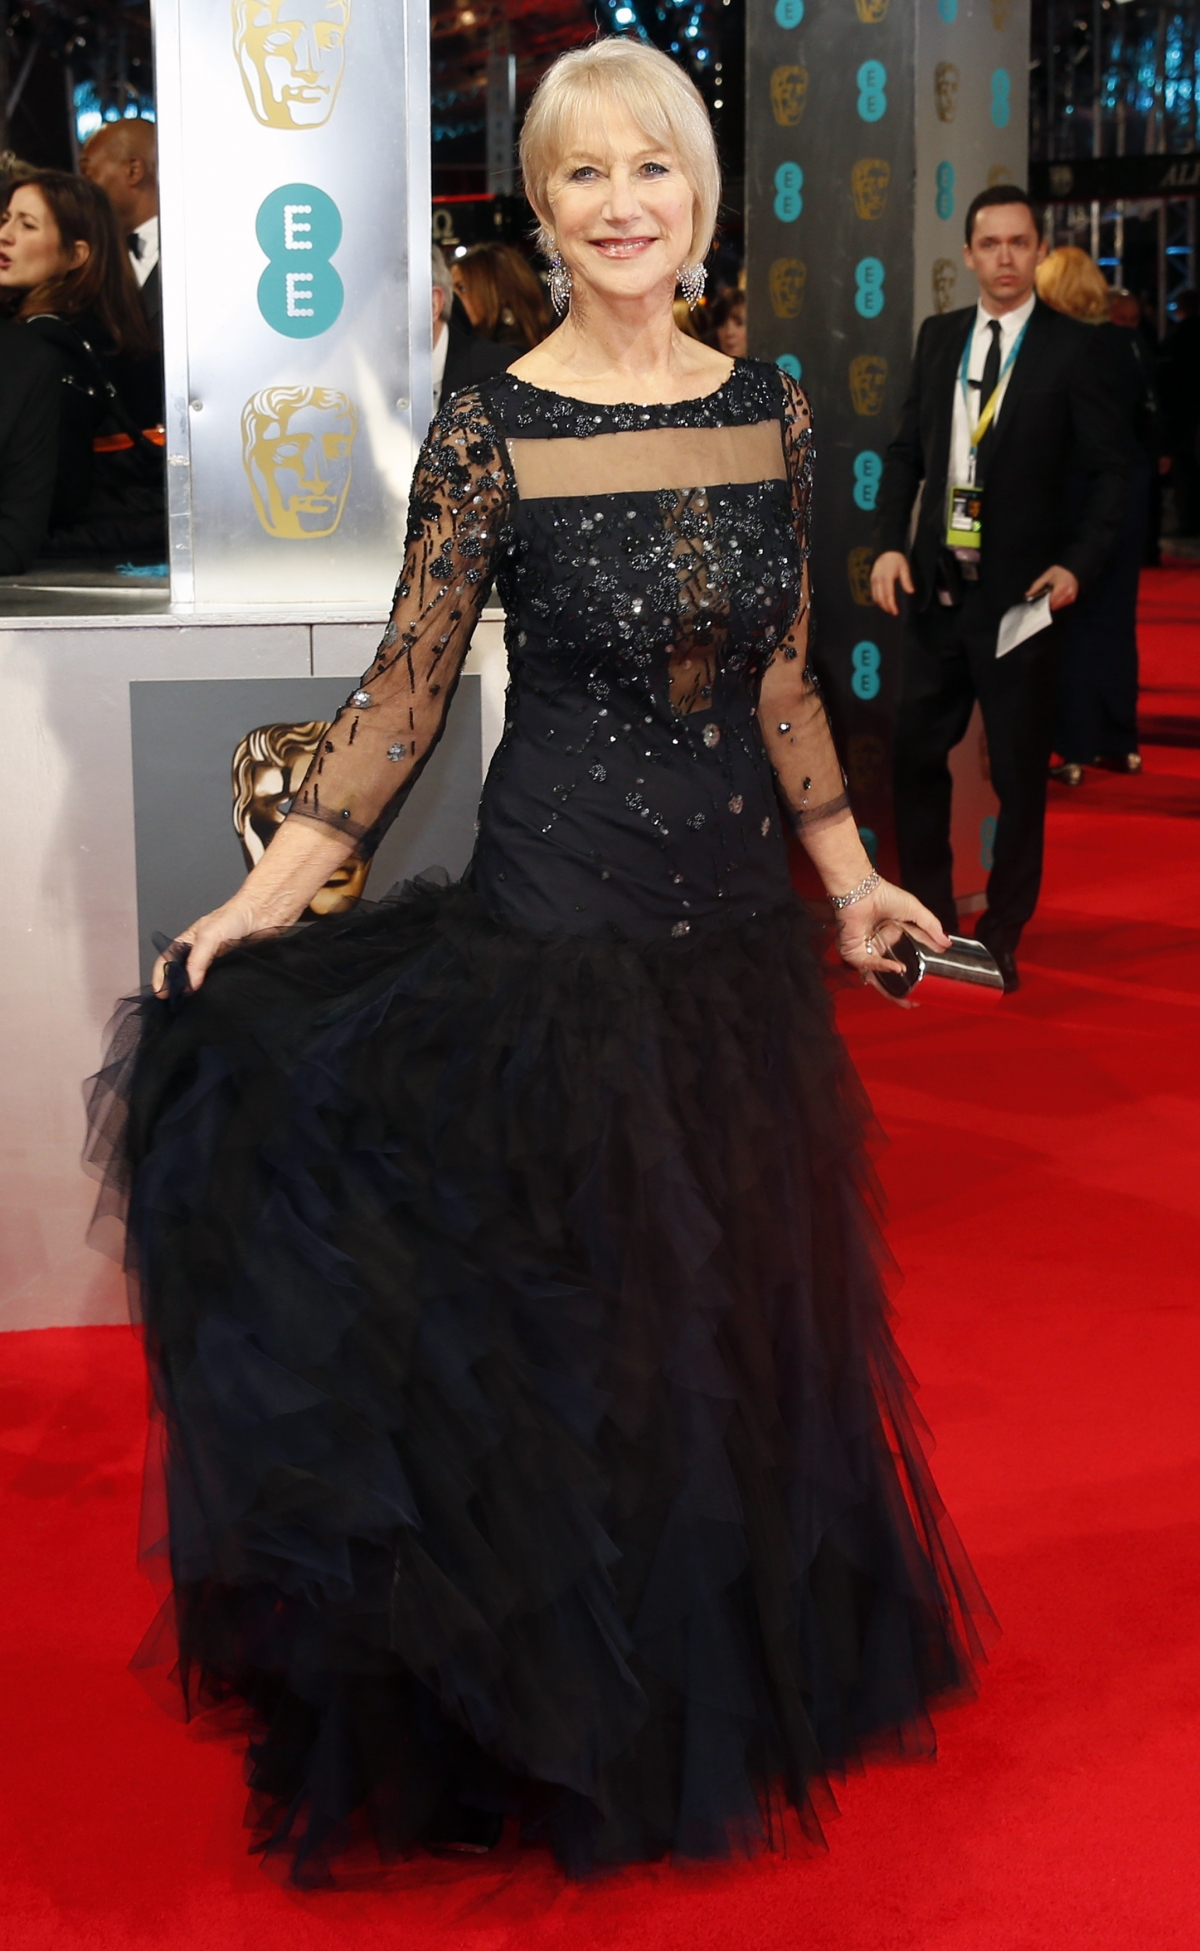 The Baftas 2014 The Best Dressed Stars At The Baftas